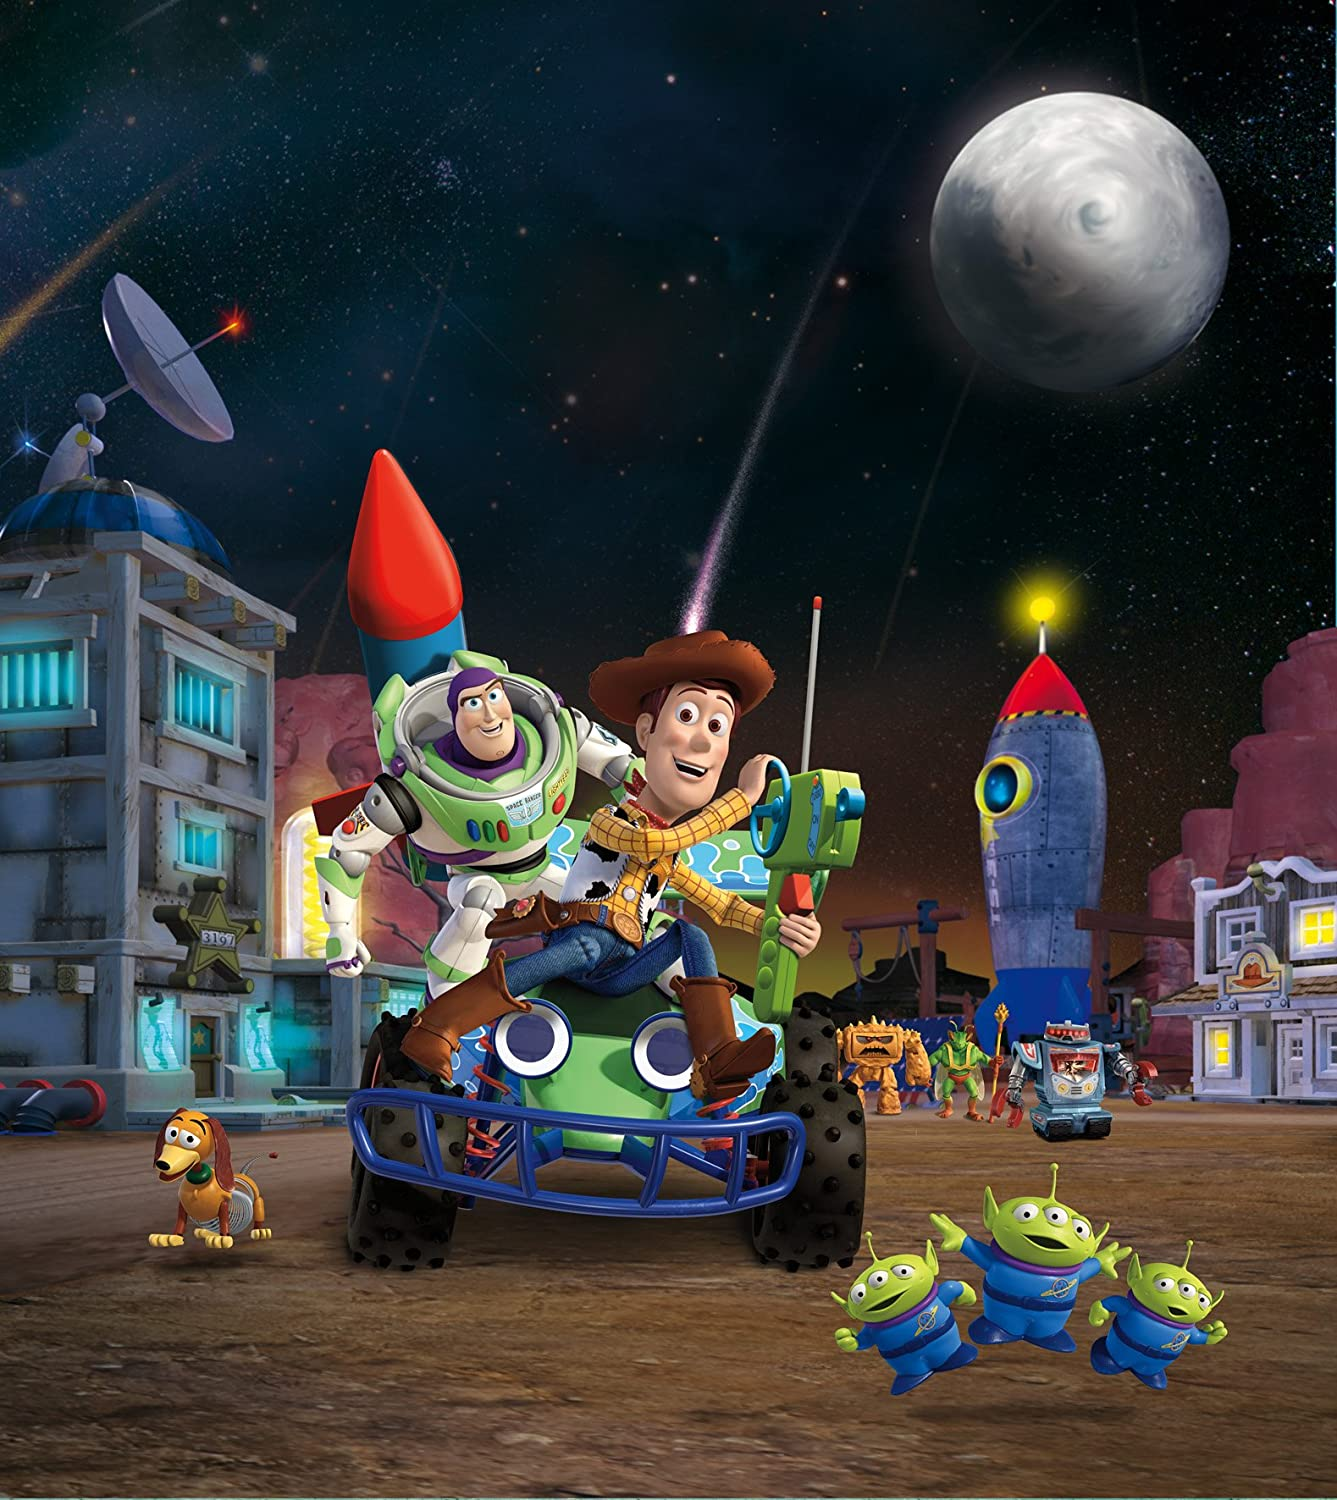 AG Design Toy Story 2 Part Photo Mural Wallpaper for Childrens Room